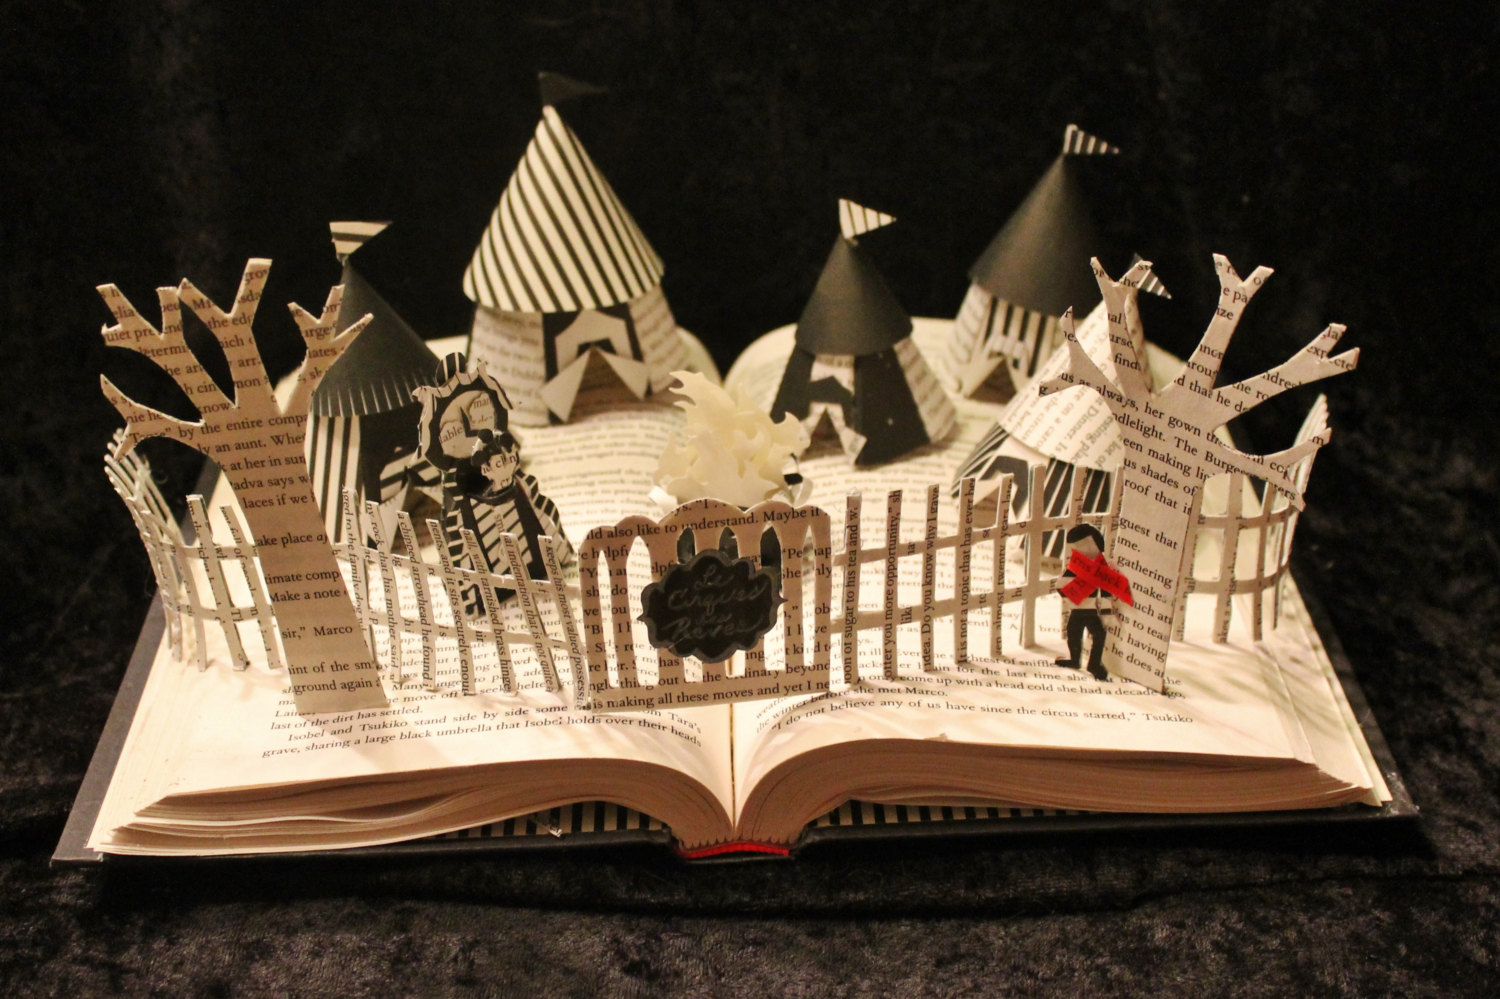 jodi-harvey-brown-book-sculptures-night-circus